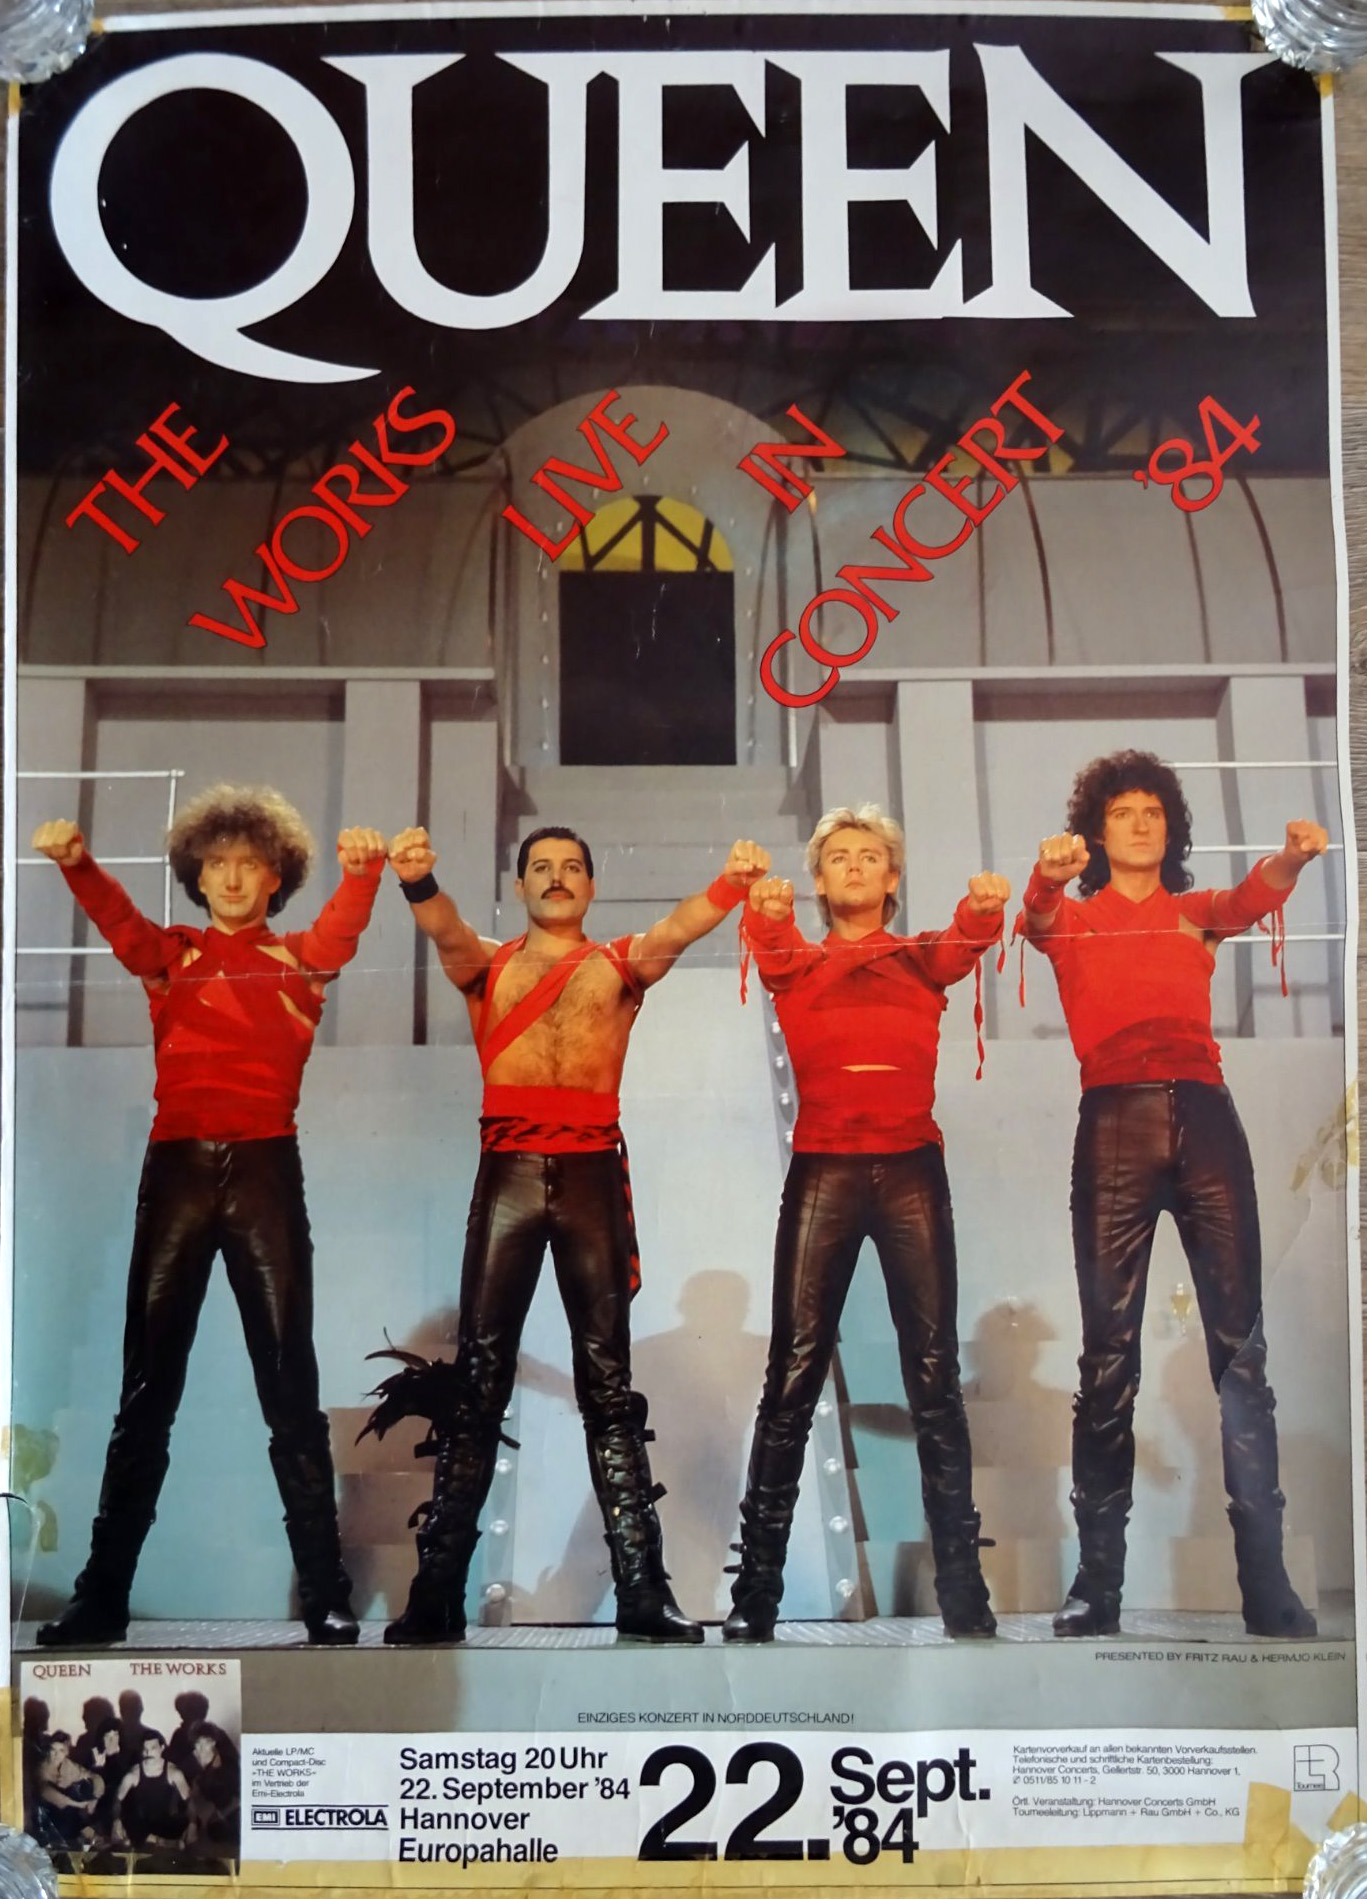 Queen in Hannover on 22.09.1984